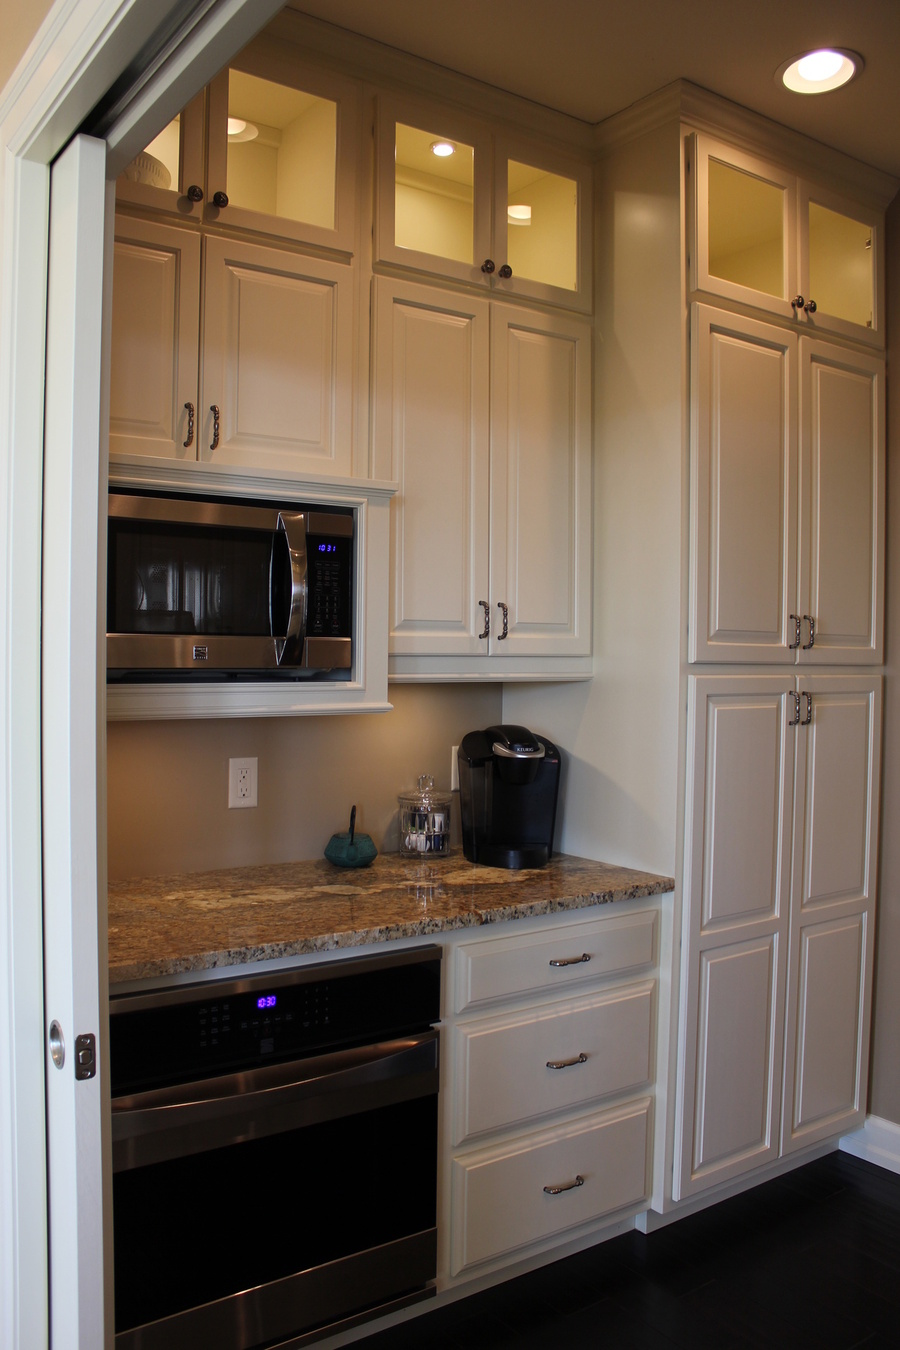 full kitchen cabinets full kitchen cabinets full set of white painted birch kitchen cabinets and granite counters